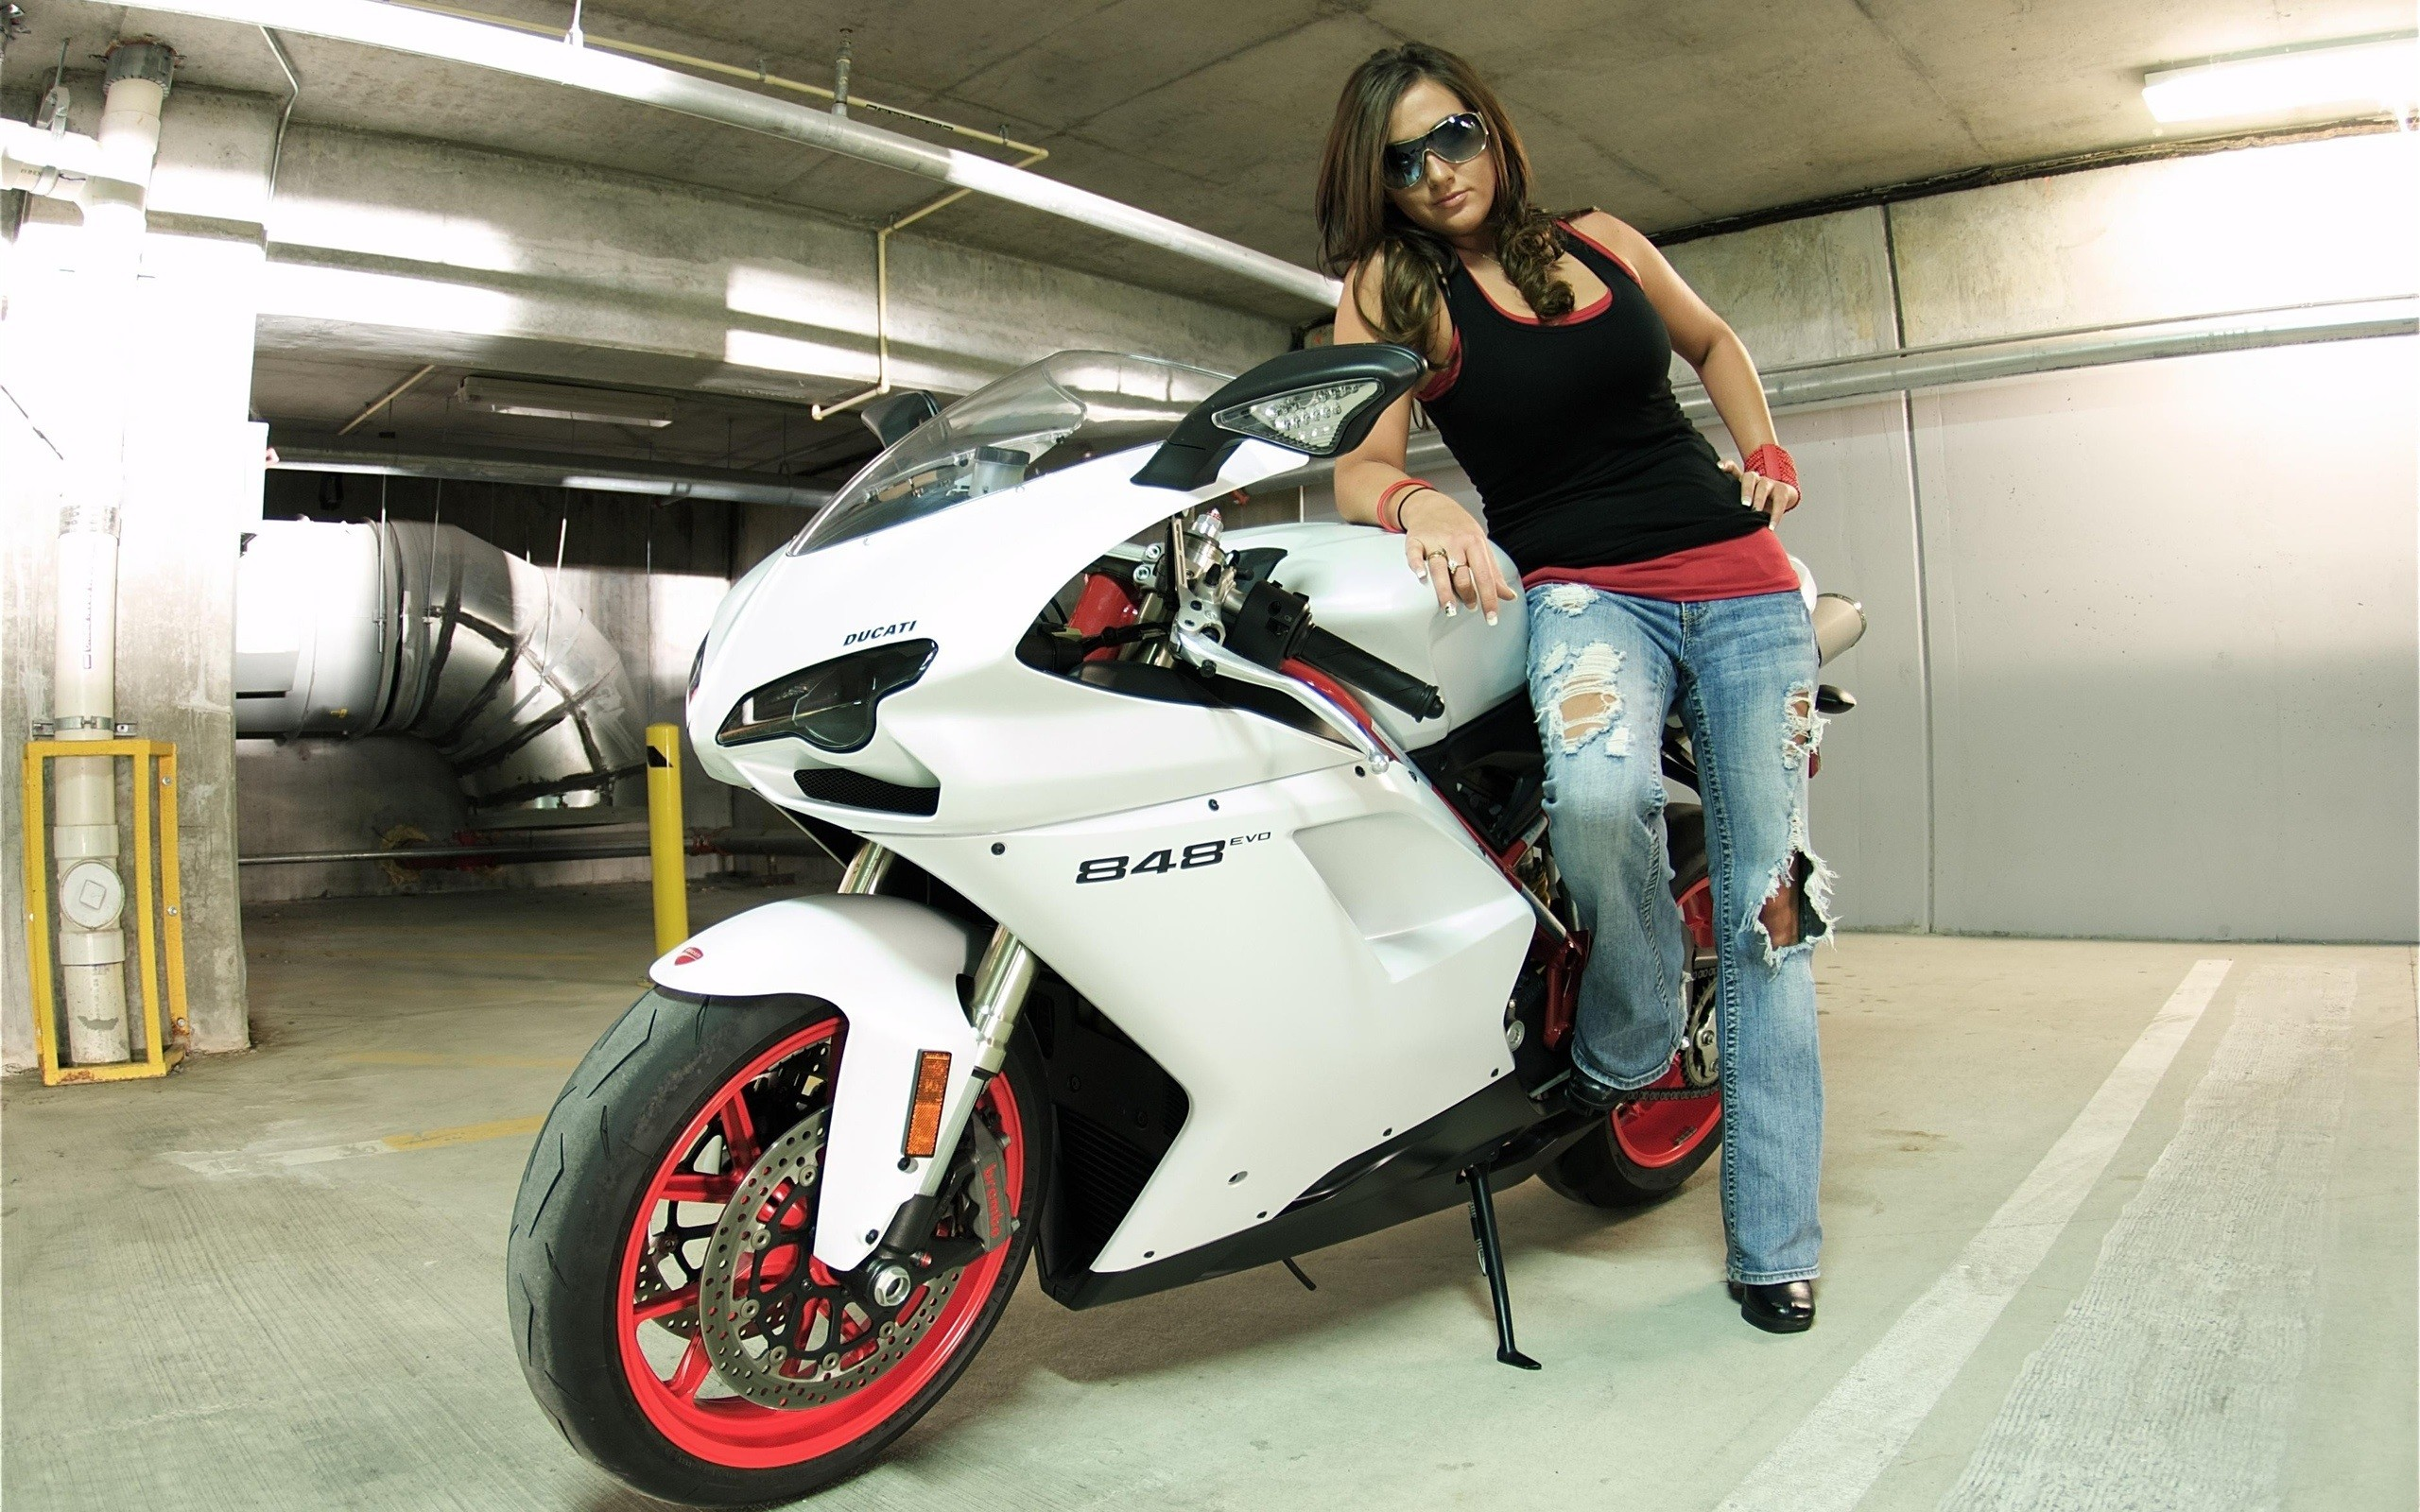 Ducati 848 white color motorcycle and girl wallpaper thumb